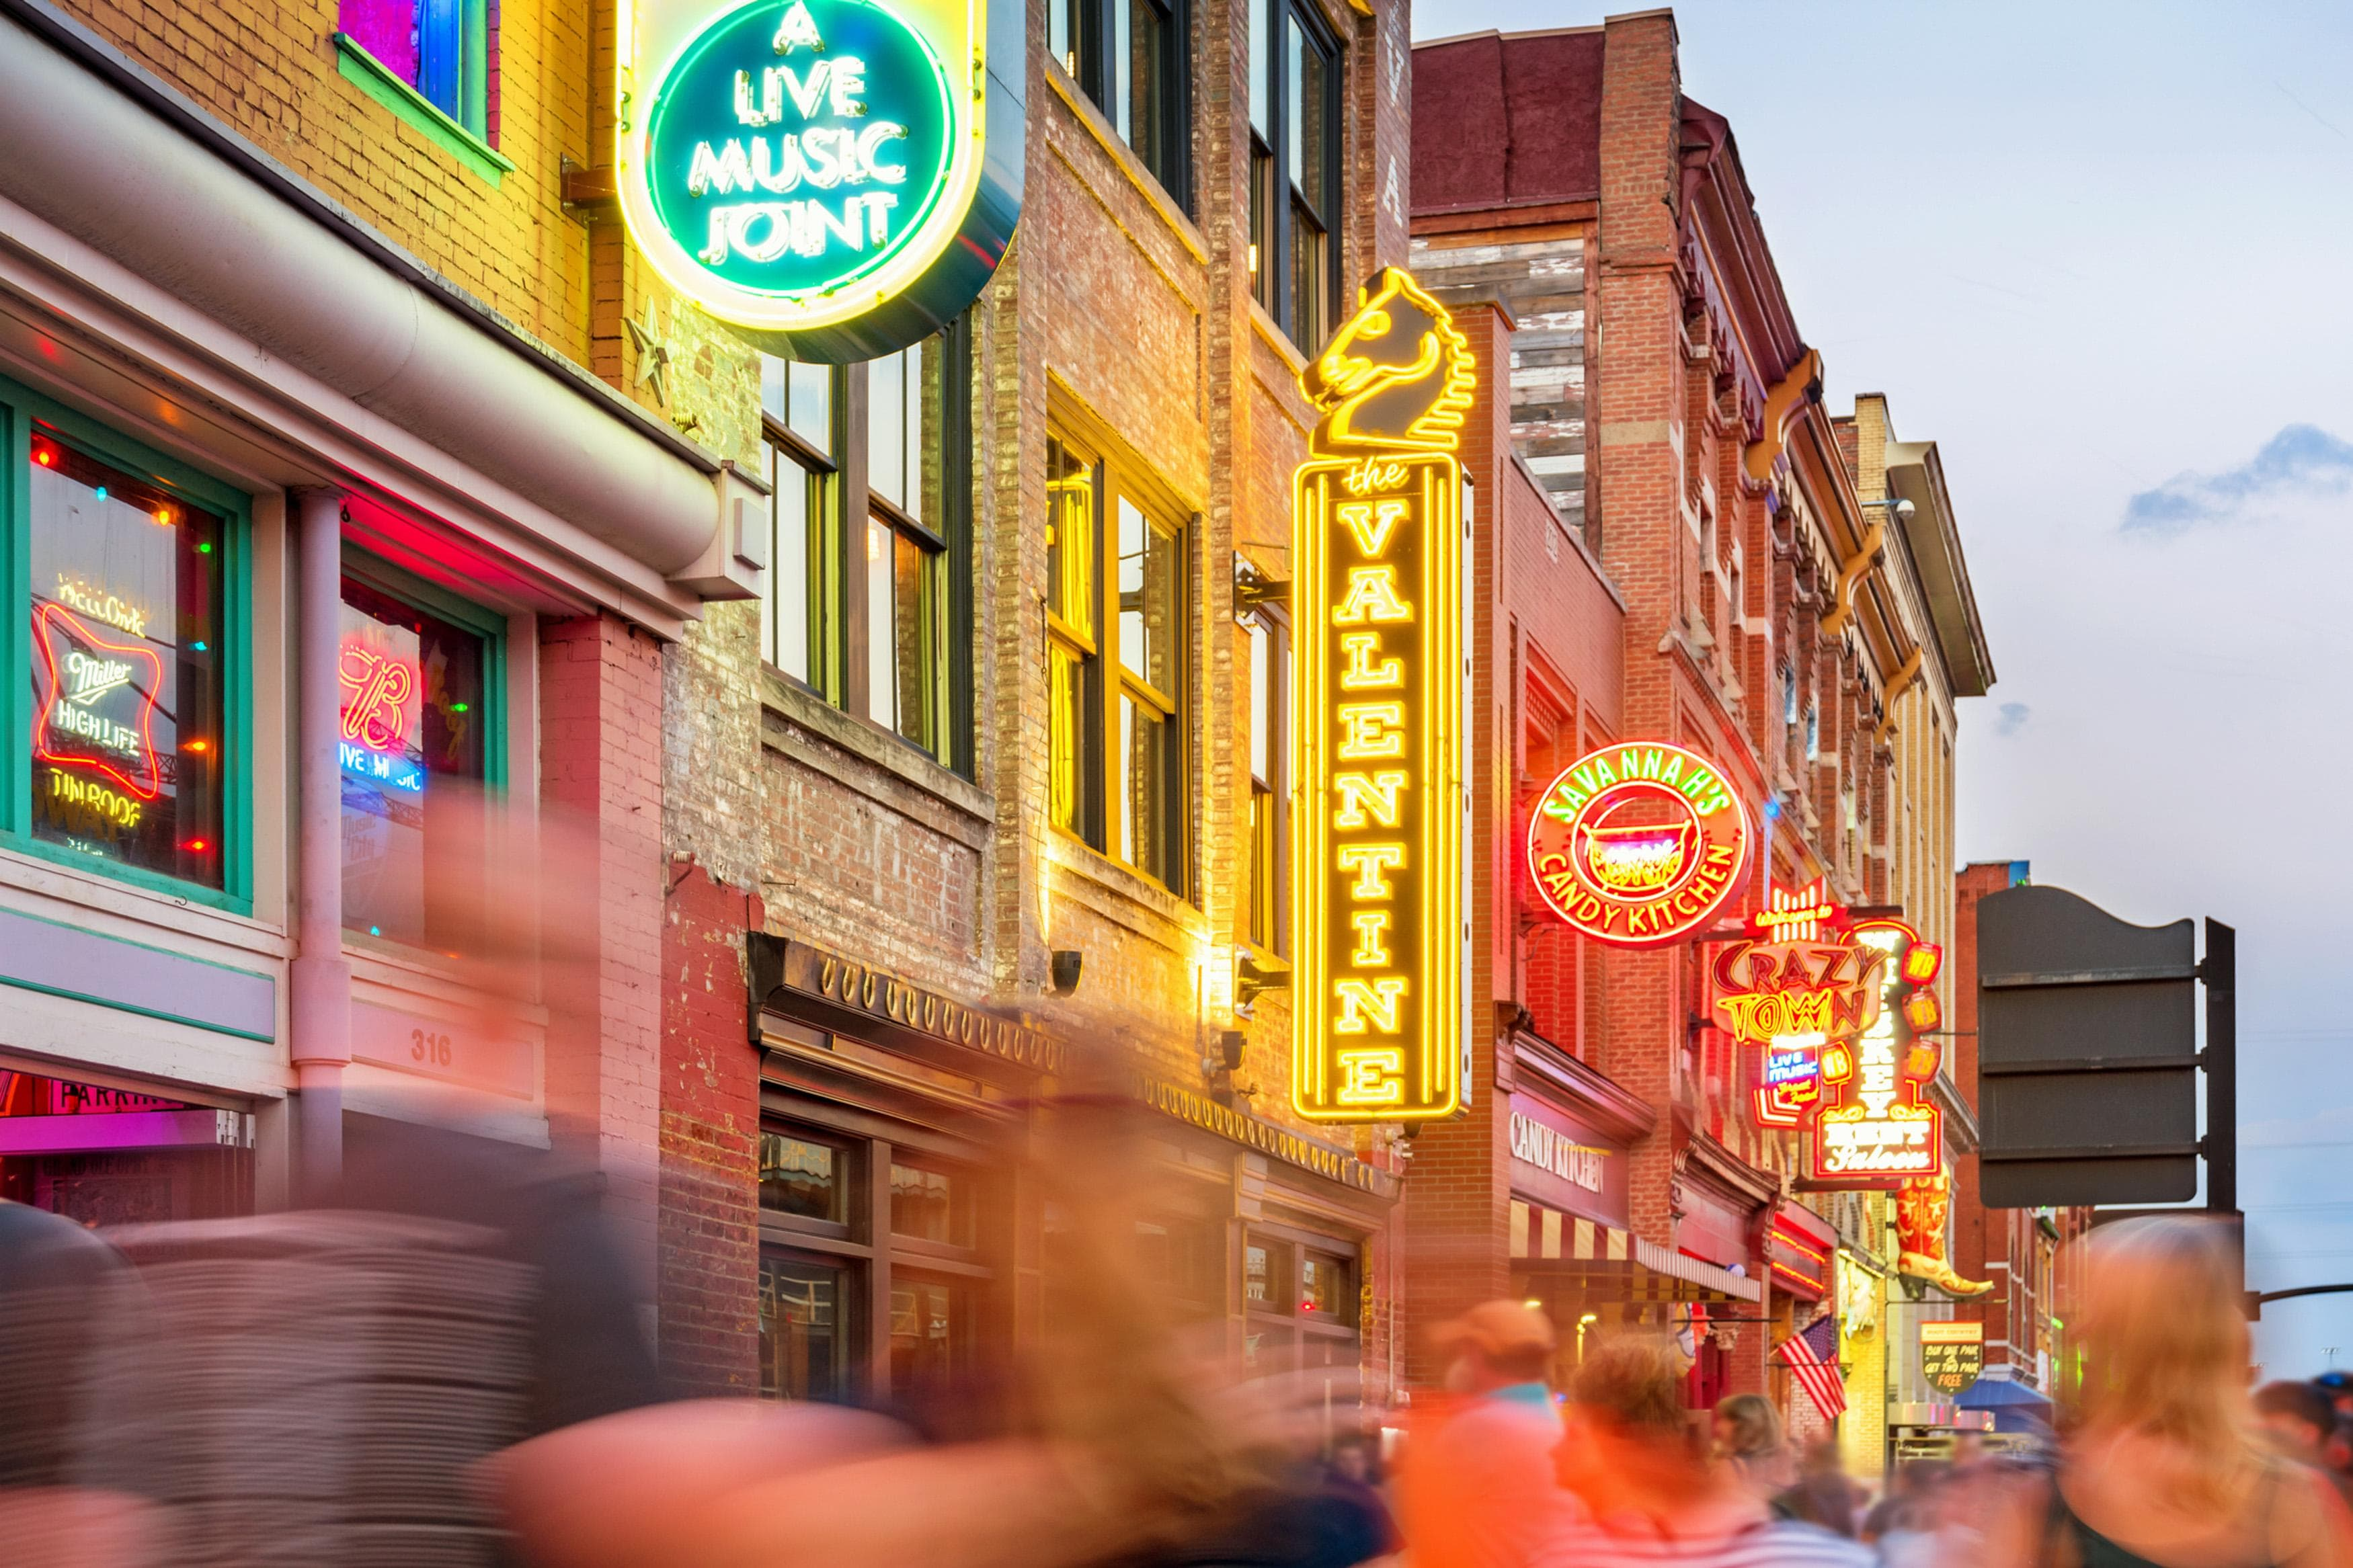 Venture to the heart of Nashville and find a slew of pubs offering free country music on the popular Honky Tonk Row.